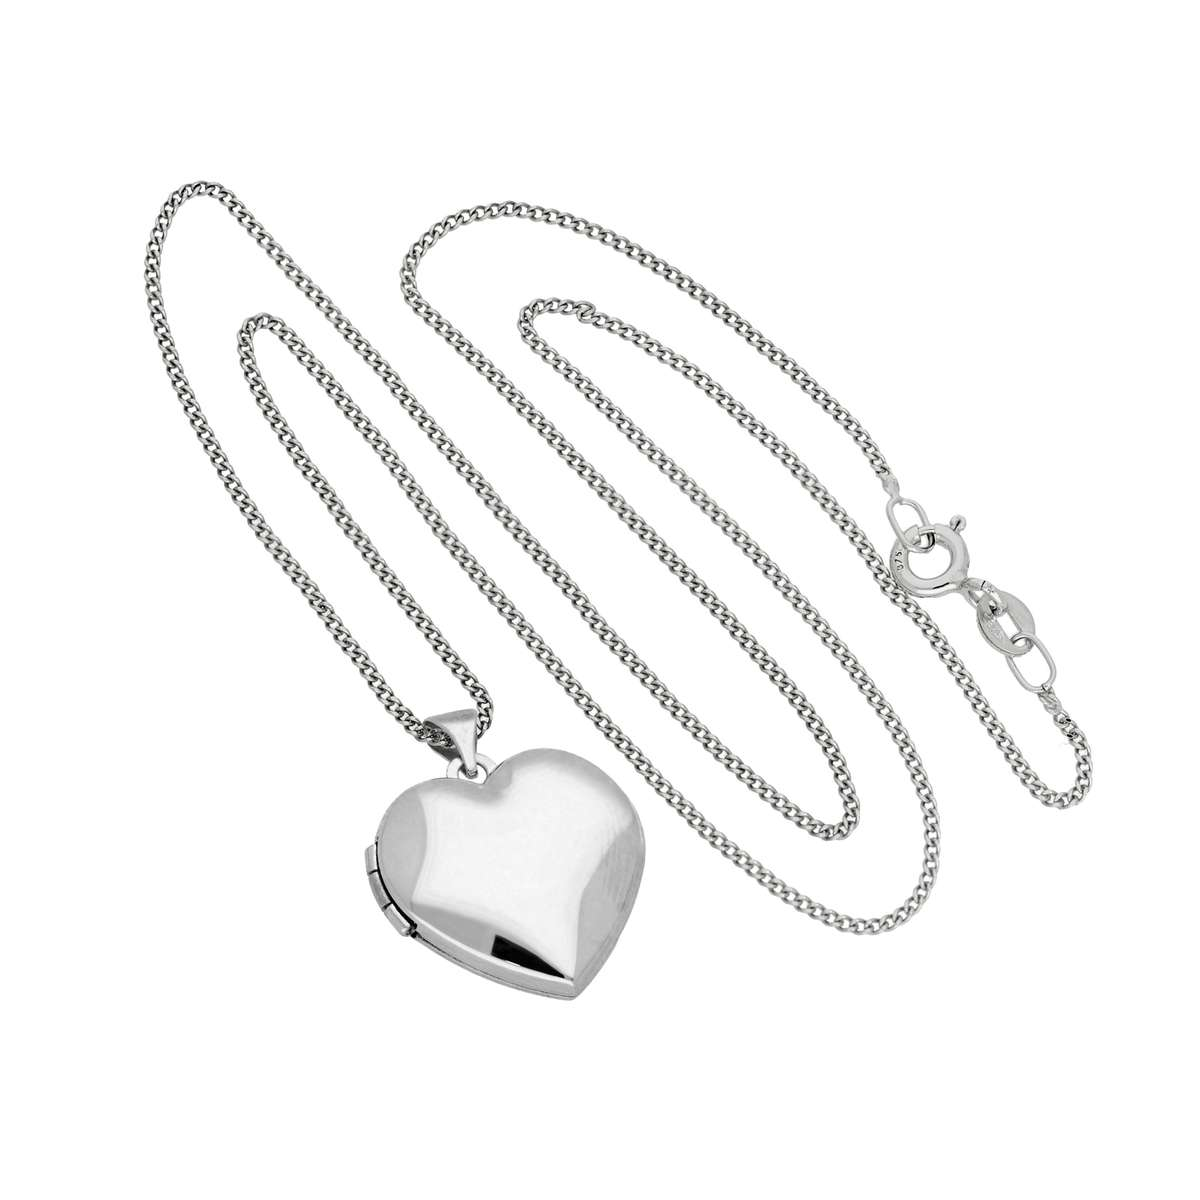 Alterative image for 9ct White Gold Engravable Heart Locket on Chain 16 - 18 Inches